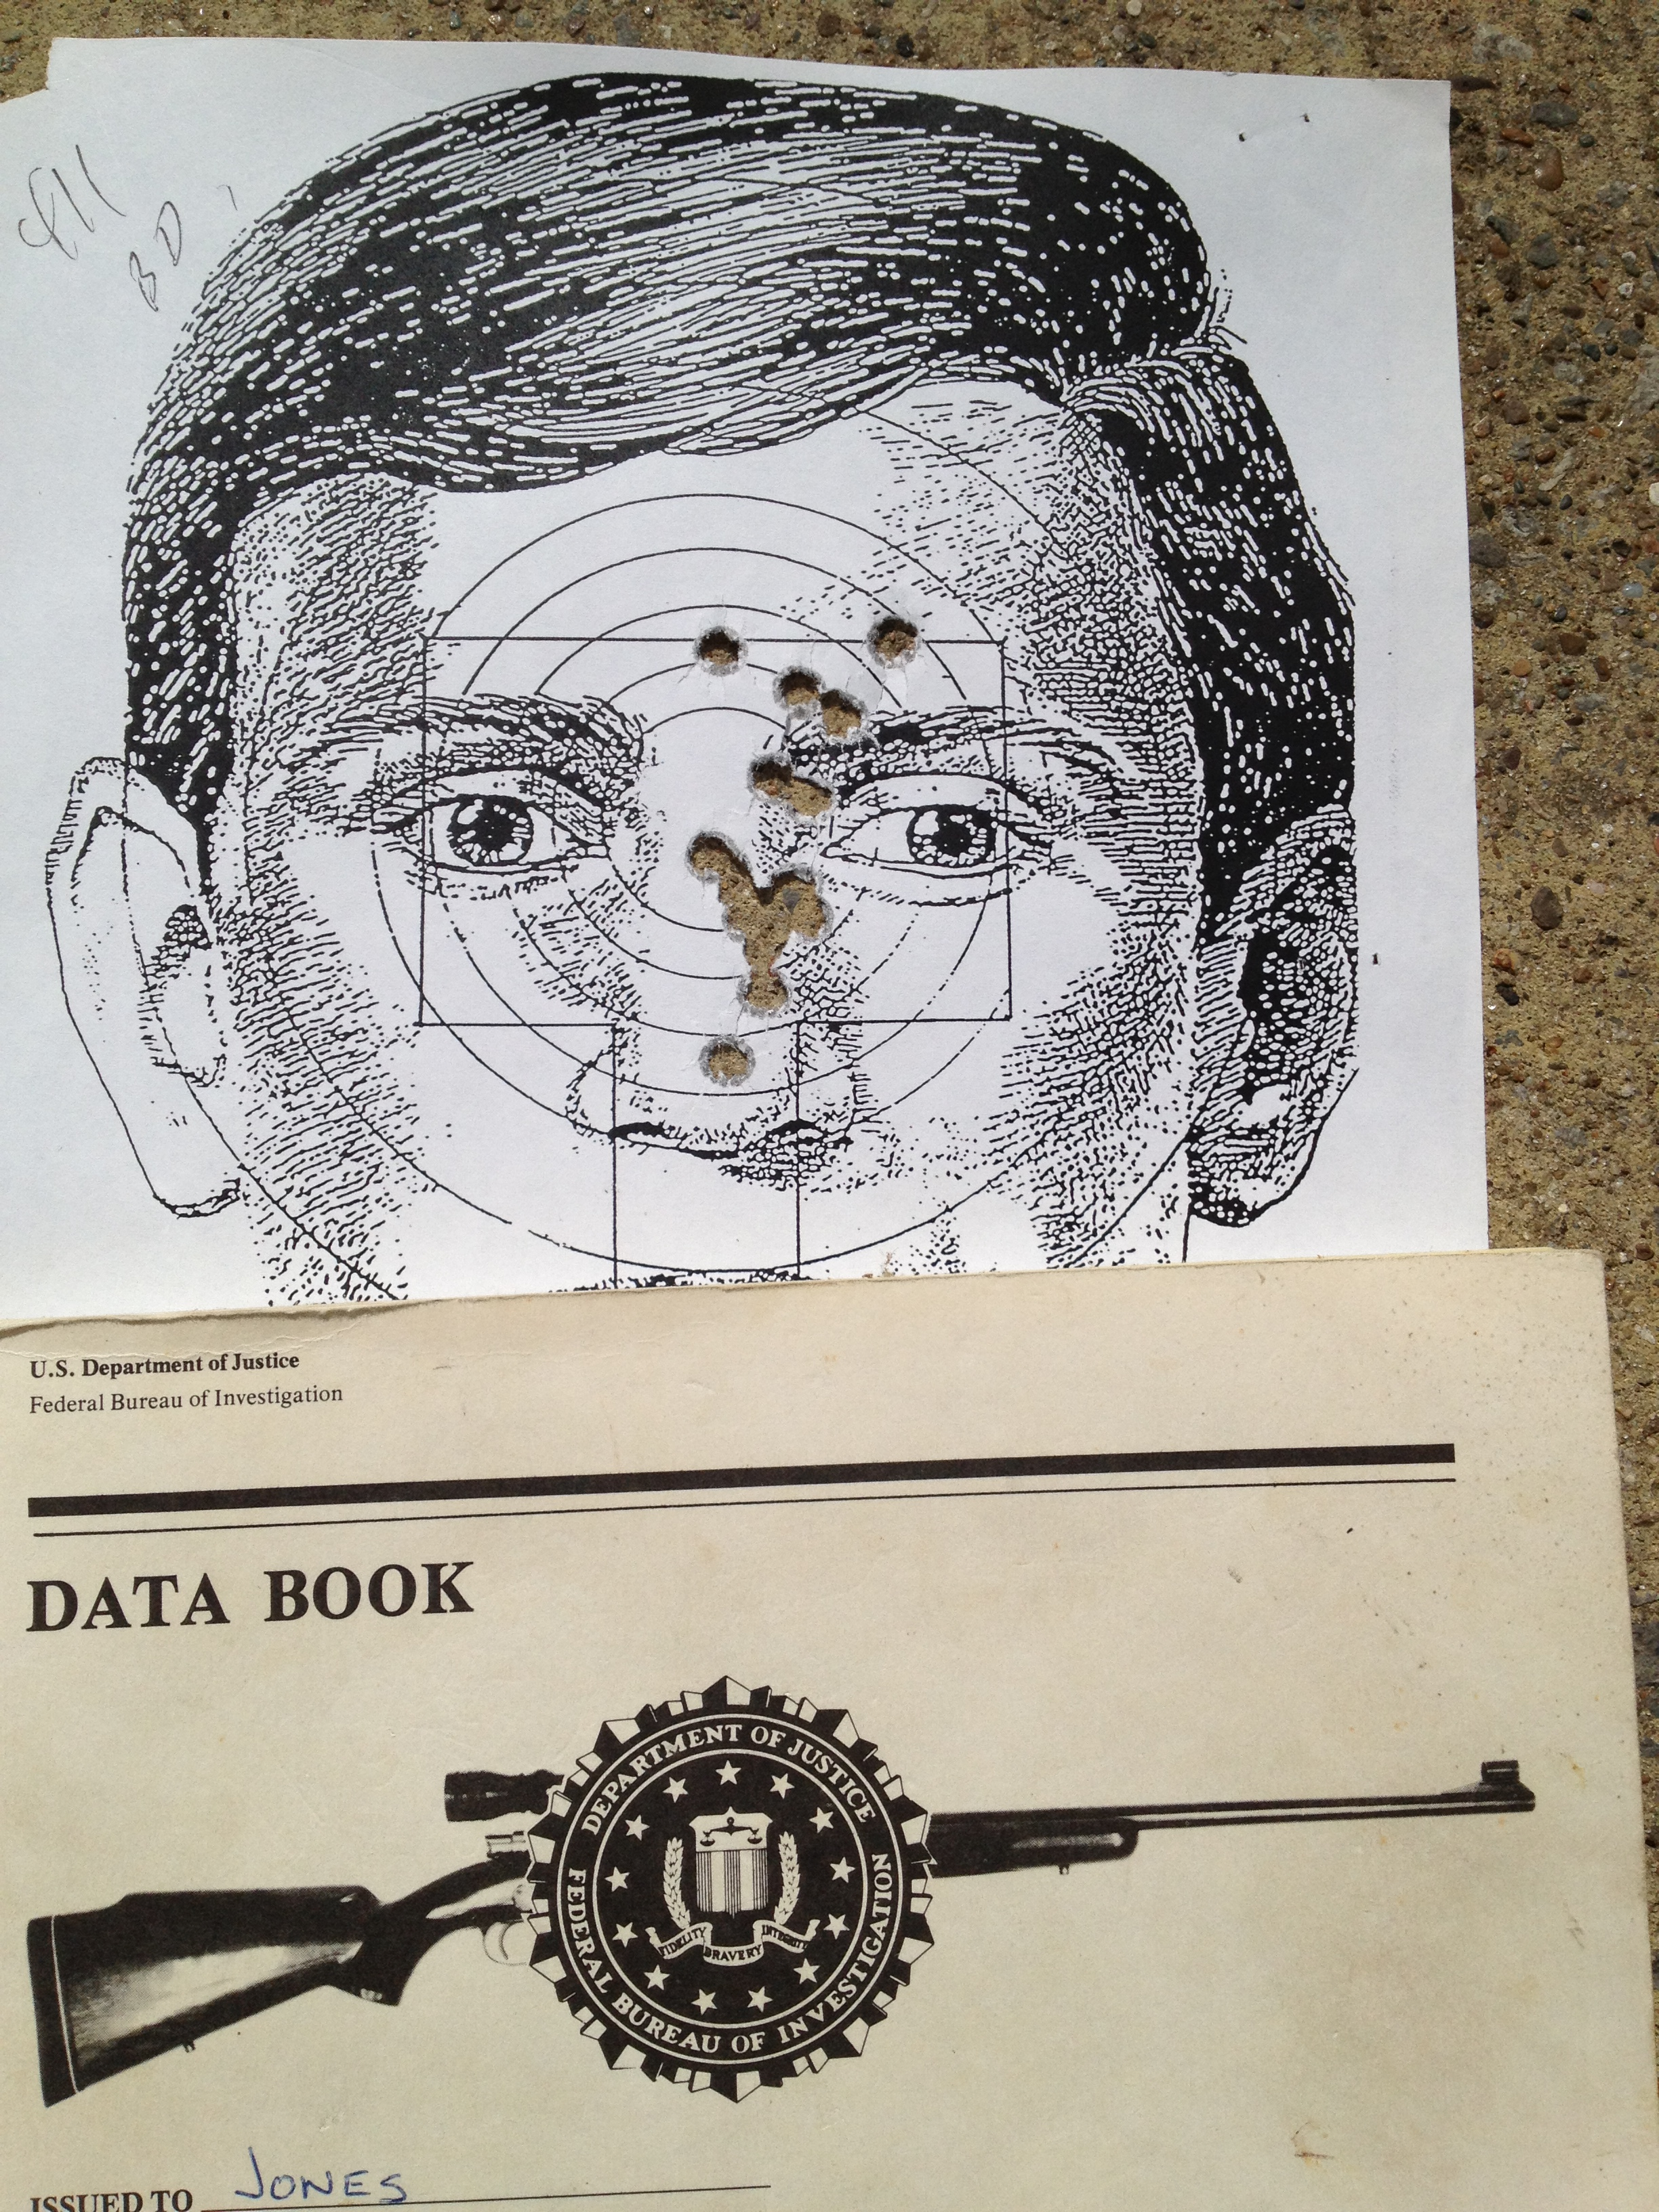 An old qualification target with a vintage FBI sniper school data book.  Documentation on the target states that the run was made in 4:11 total.